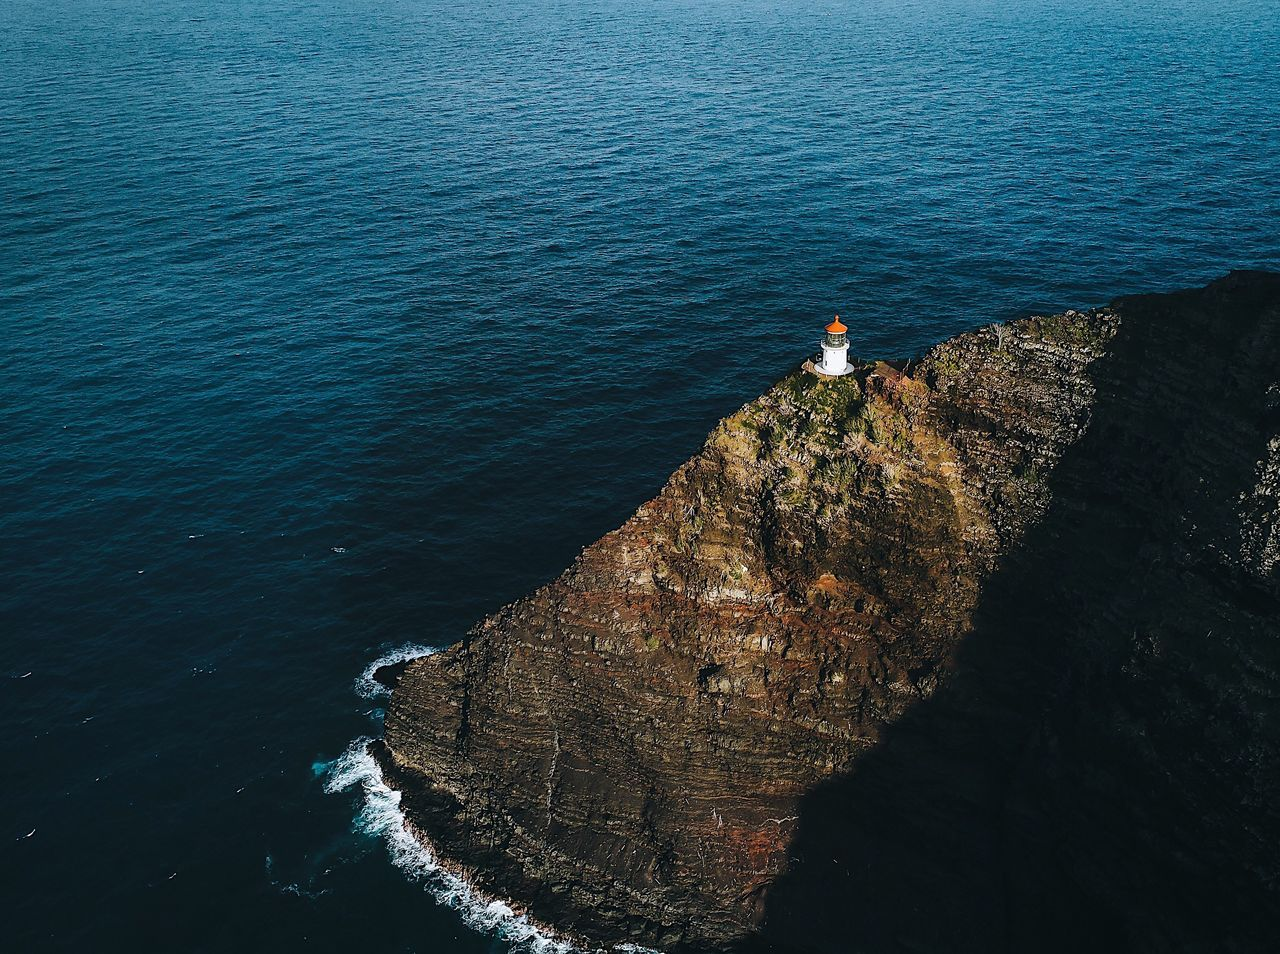 Flying High Rock - Object Mid Adult Sea Leisure Activity Standing One Person High Angle View Outdoors Water Full Length Adults Only Scenics People Adult Beauty In Nature One Man Only Day Only Men Nature